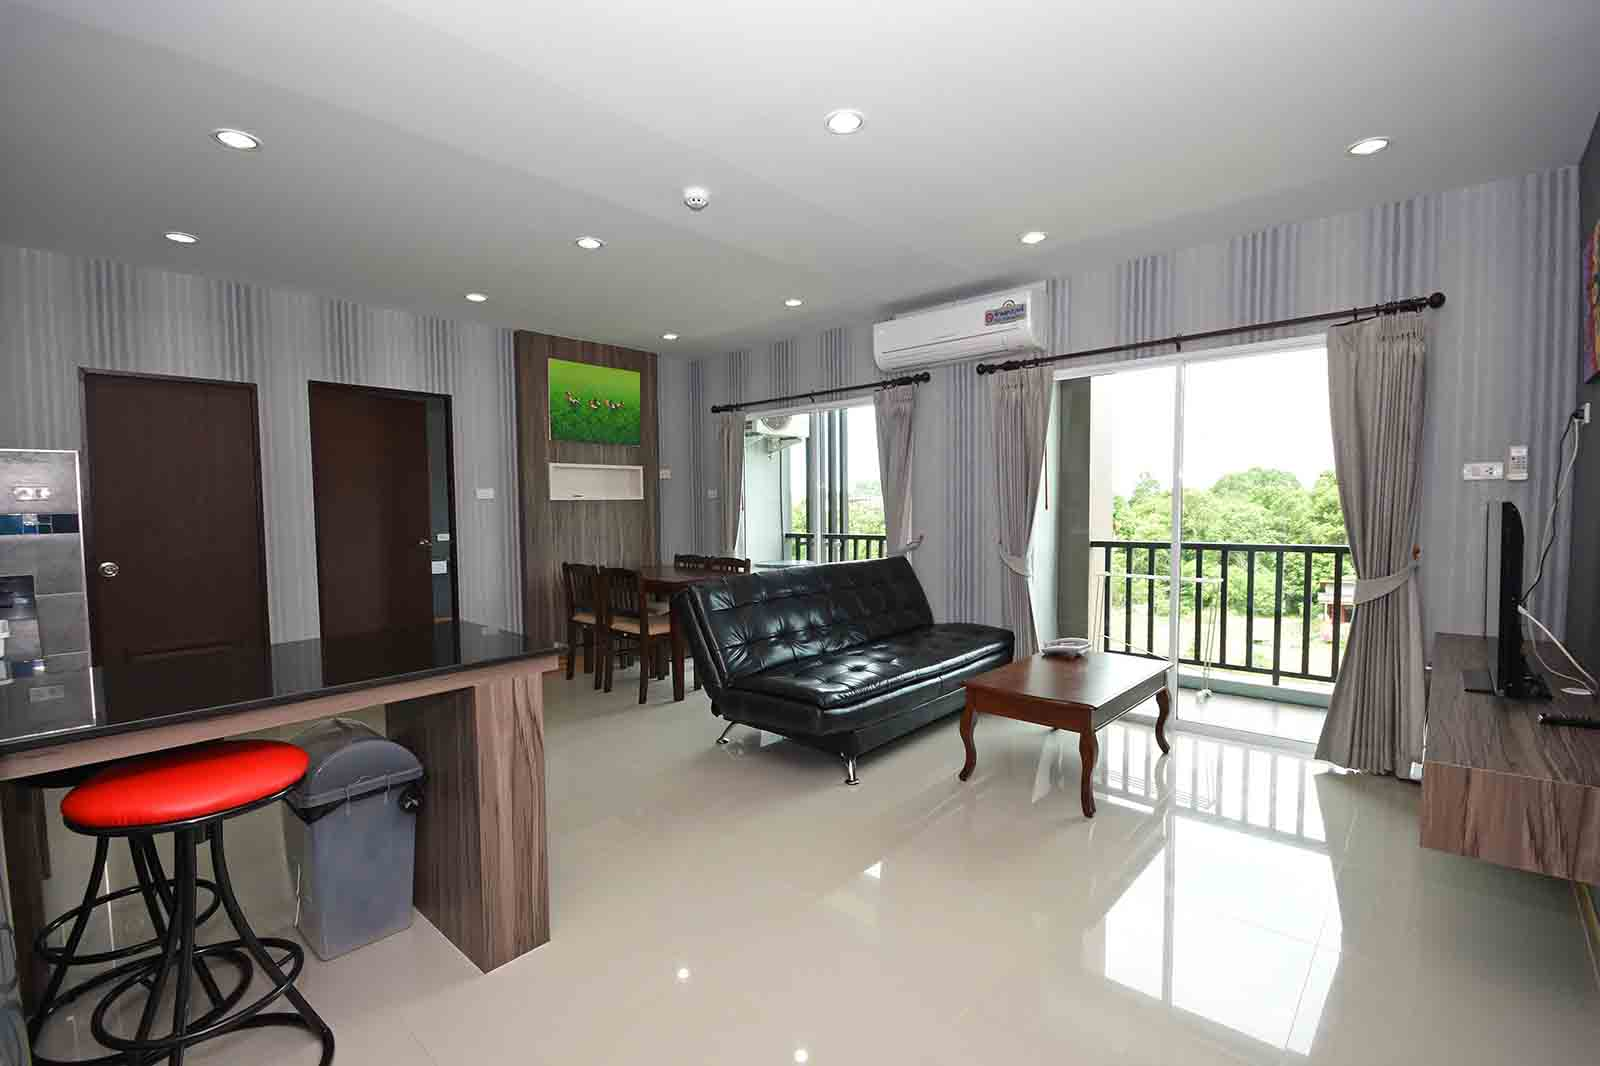 for sale -  Freehold, Two-bedroom Condominium Close to Ao Nang Beach - Ao Nang, Krabi